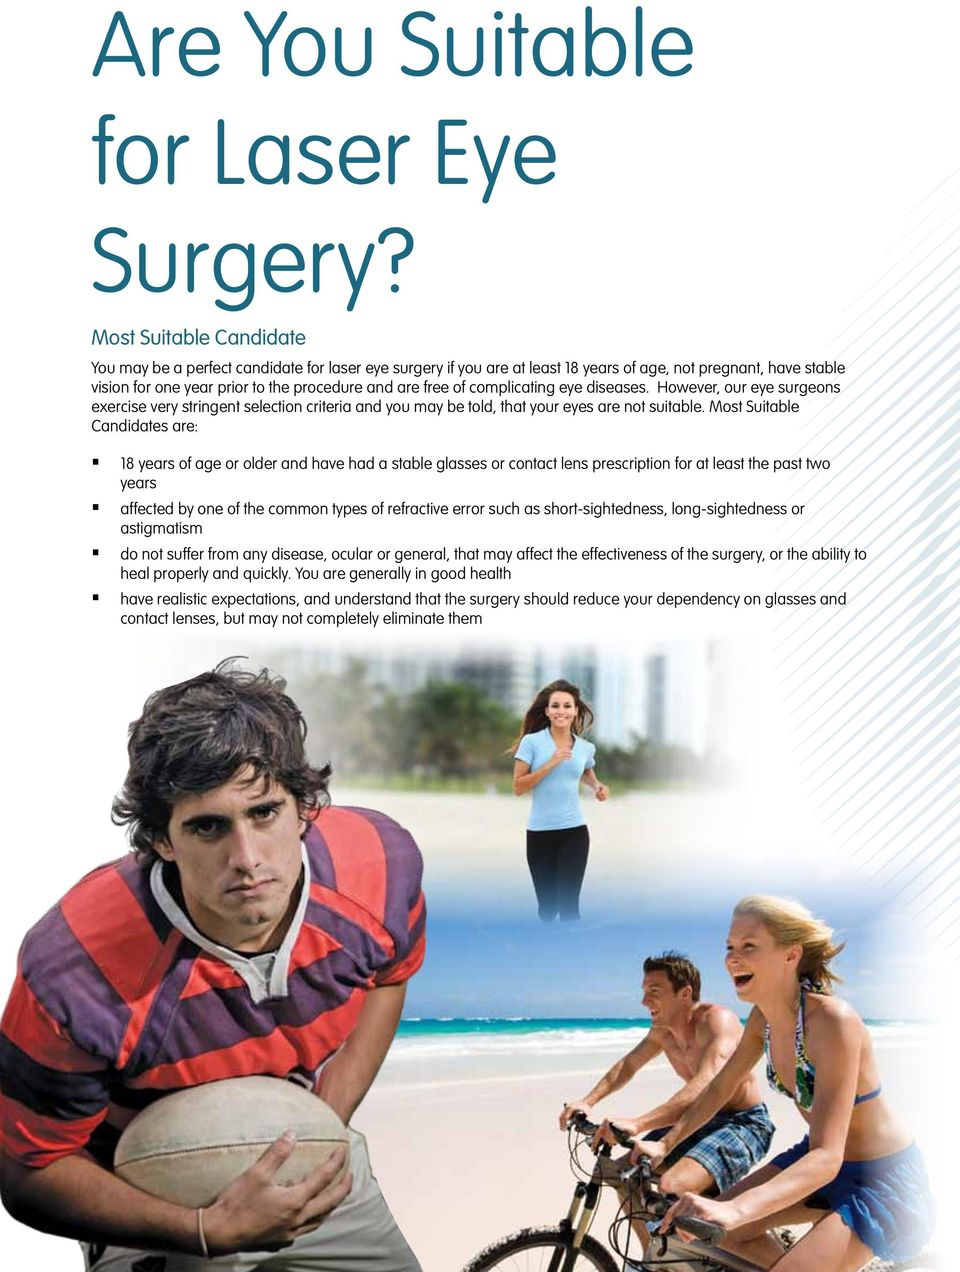 complicating eye diseases. However, our eye surgeons exercise very stringent selection criteria and you may be told, that your eyes are not suitable.